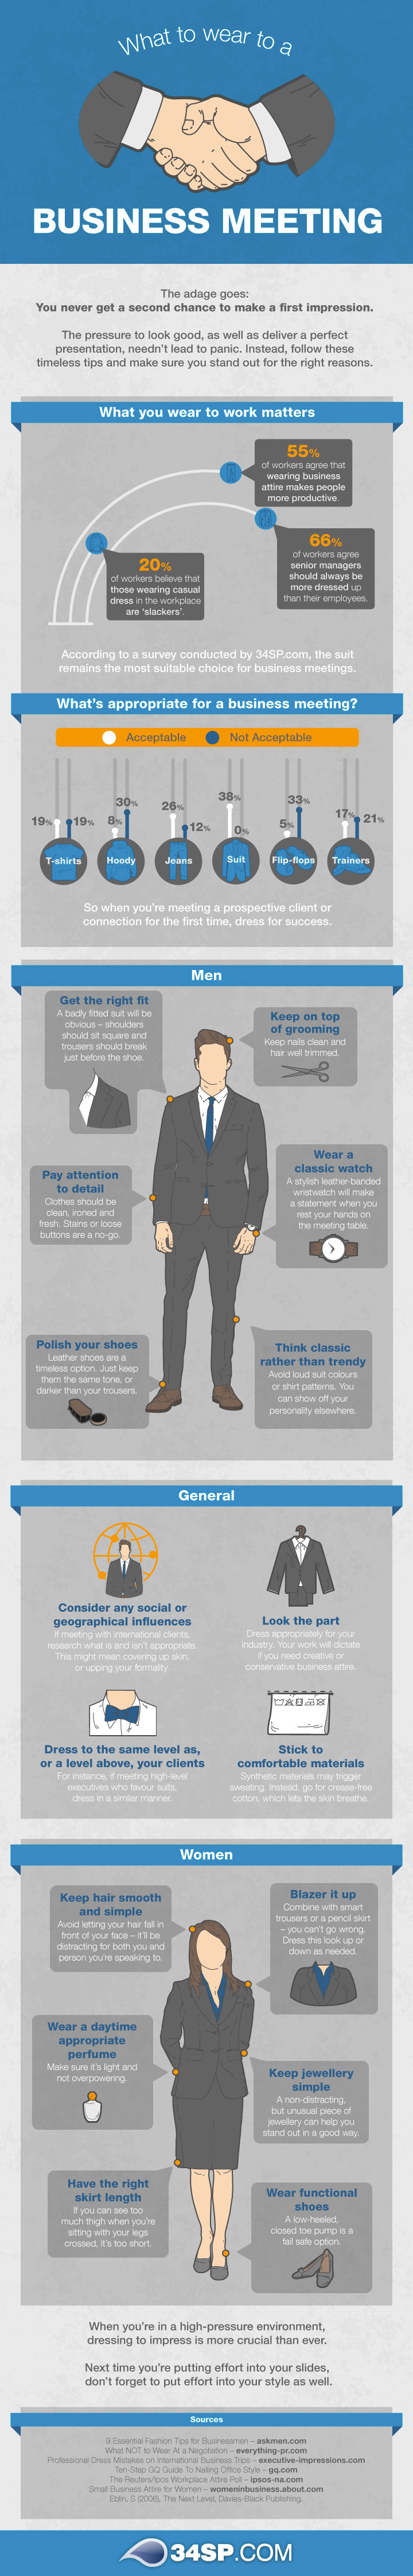 How To Dress For A Business Meeting Yes Seriously Infographic